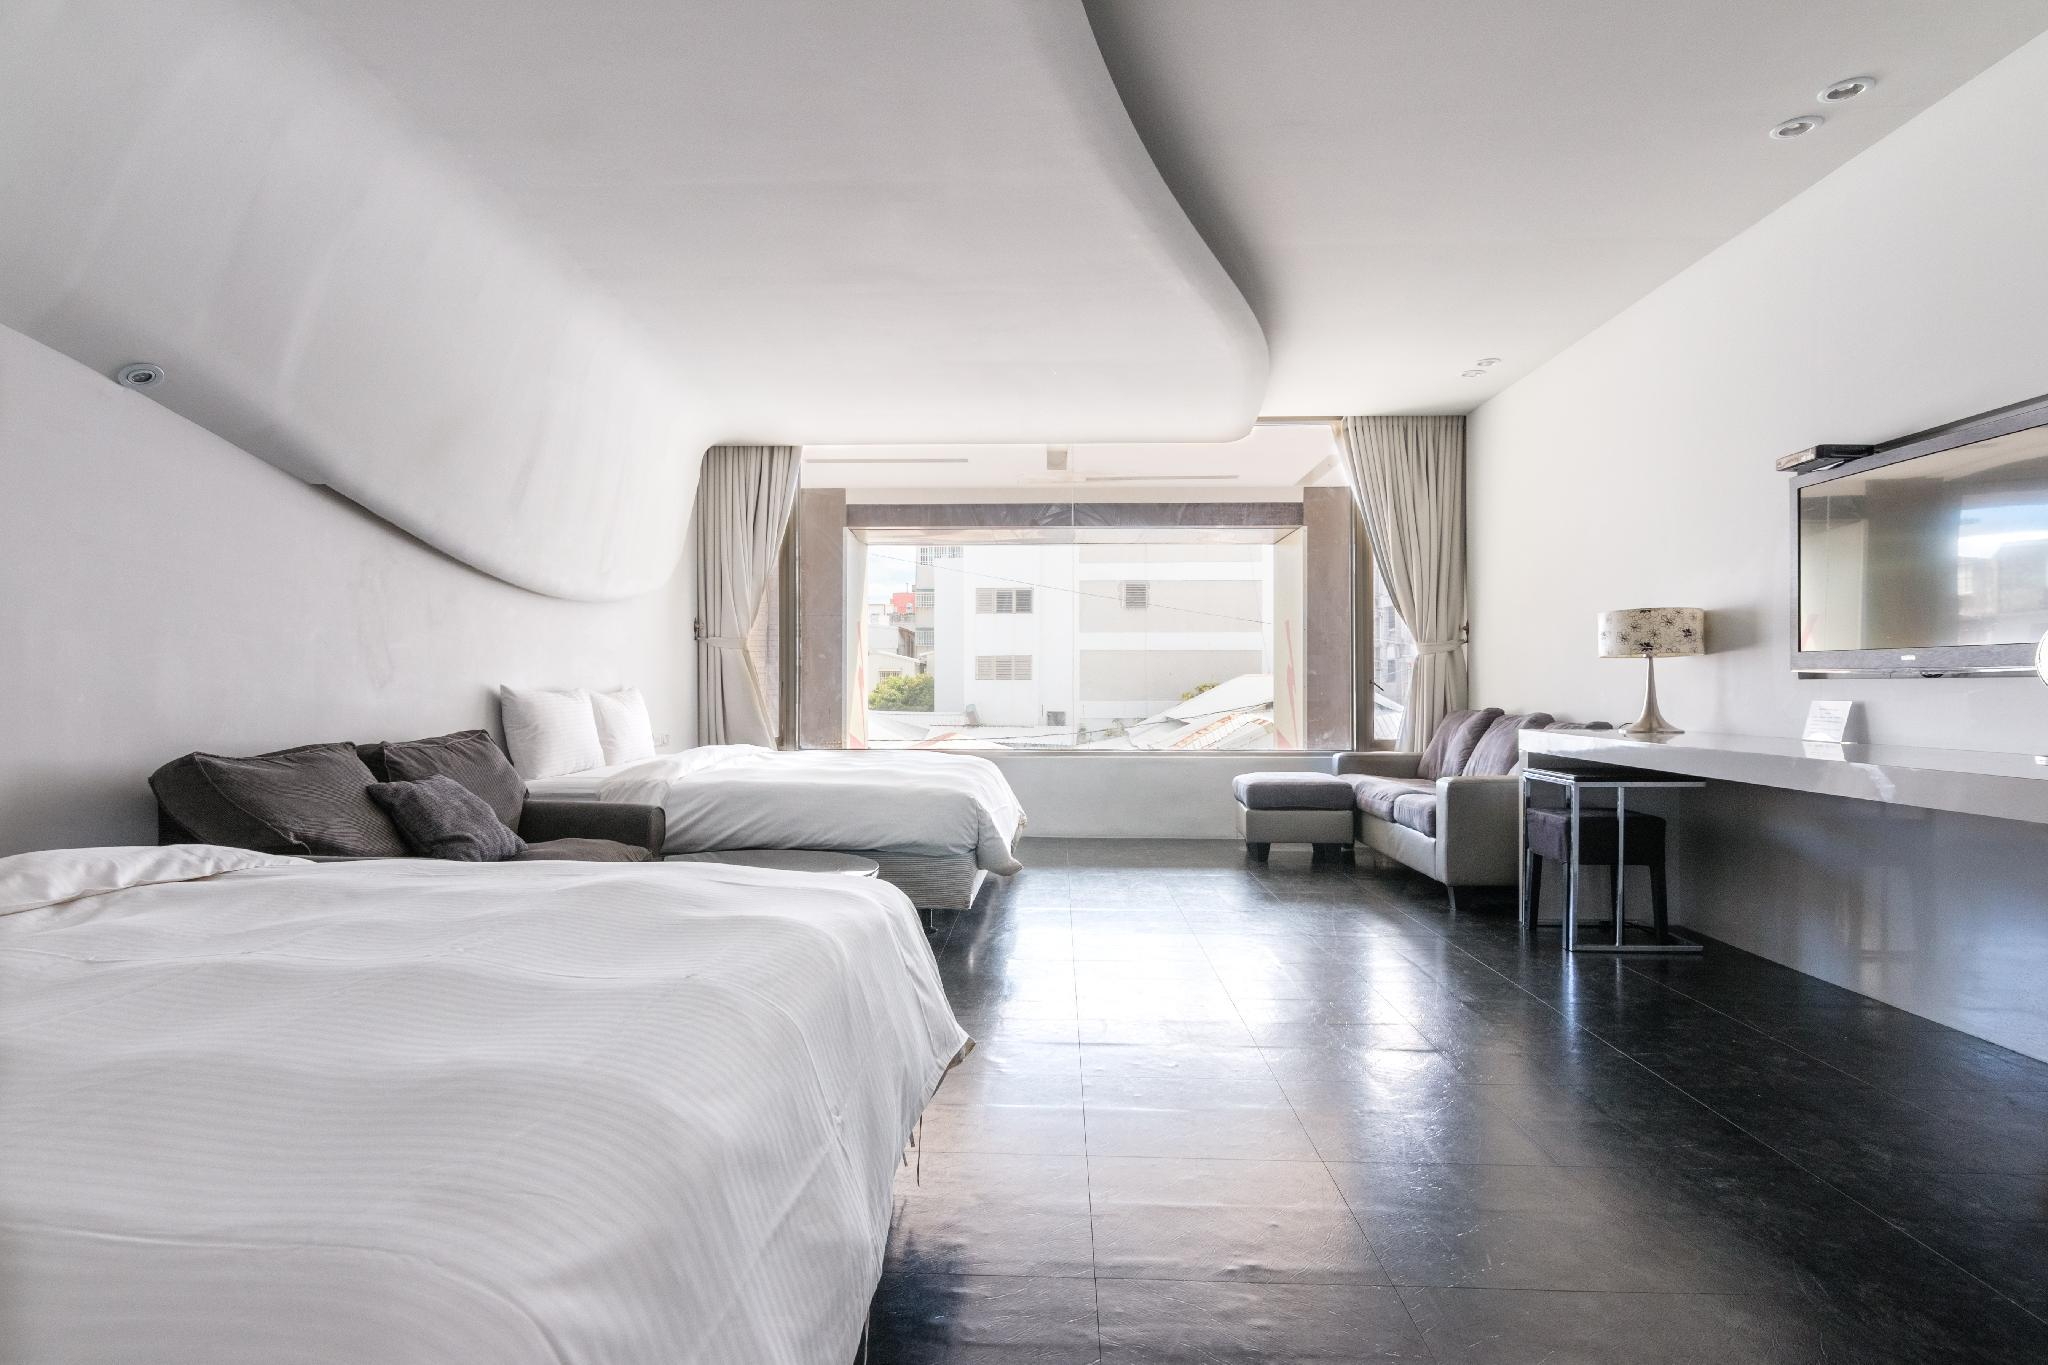 Modena Bed And Breakfast